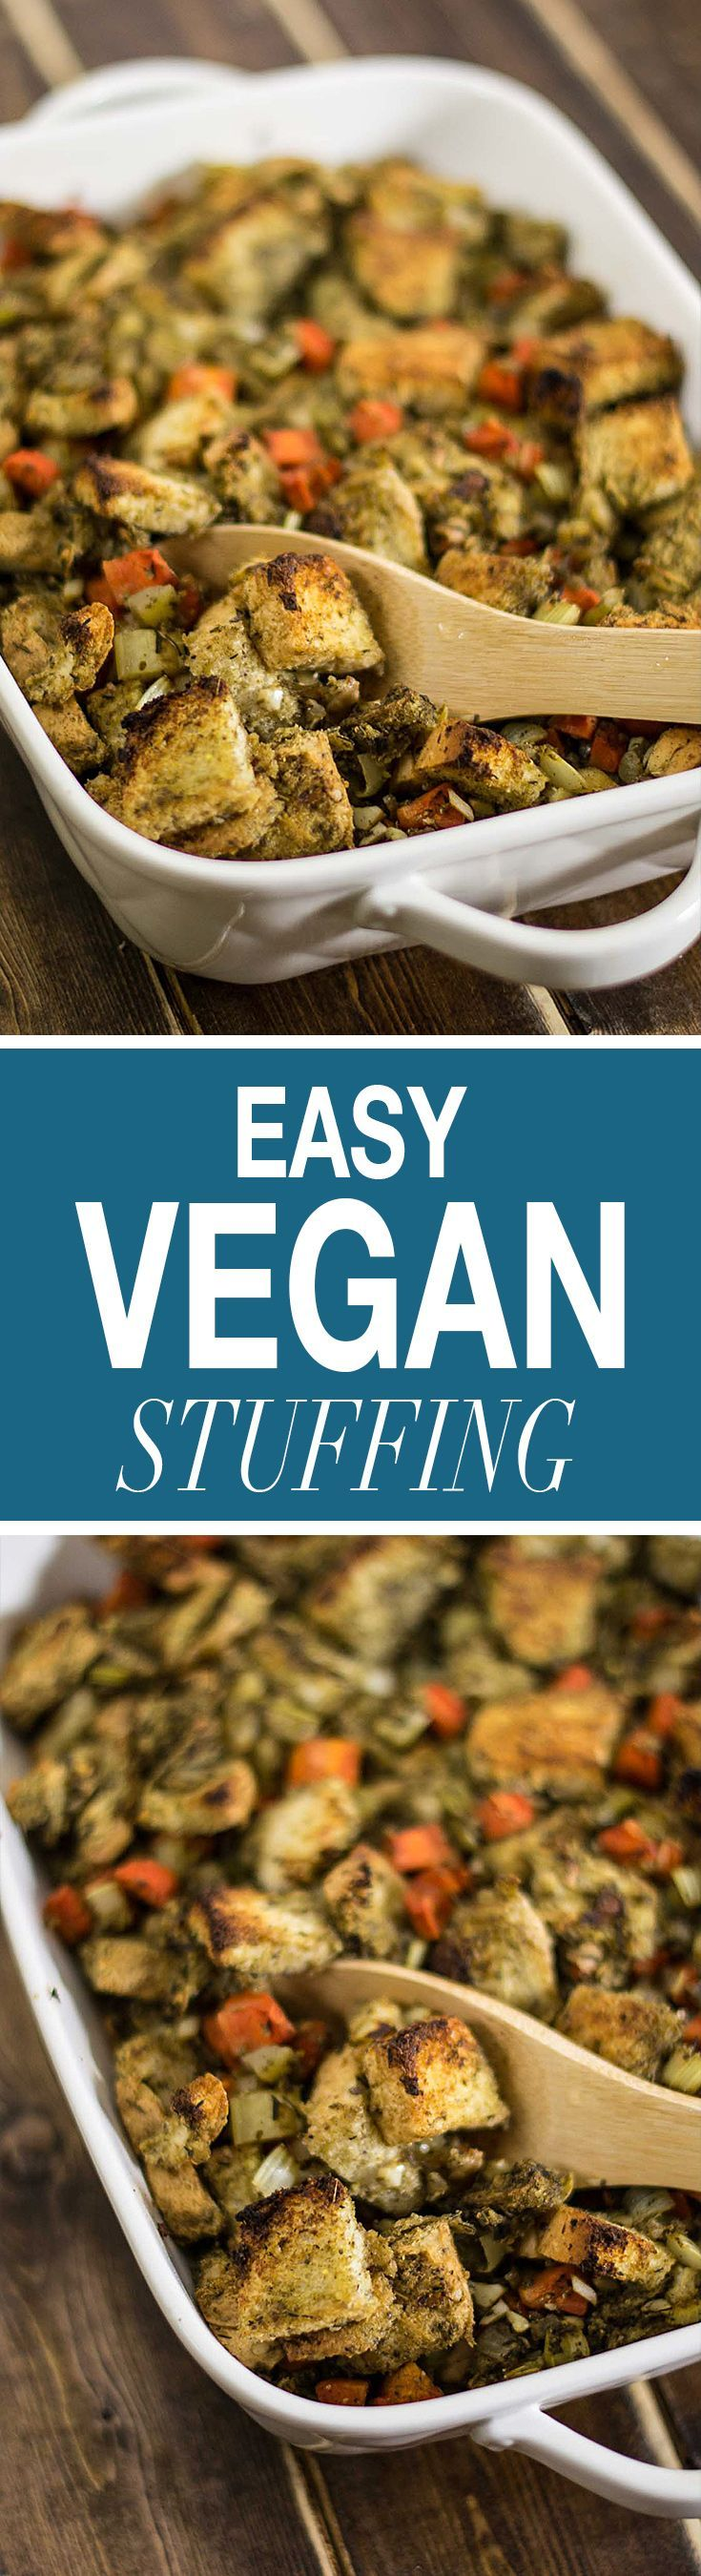 This easy to make vegan stuffing is delicious and packed full of flavor! Make it a Thanksgiving tradition!